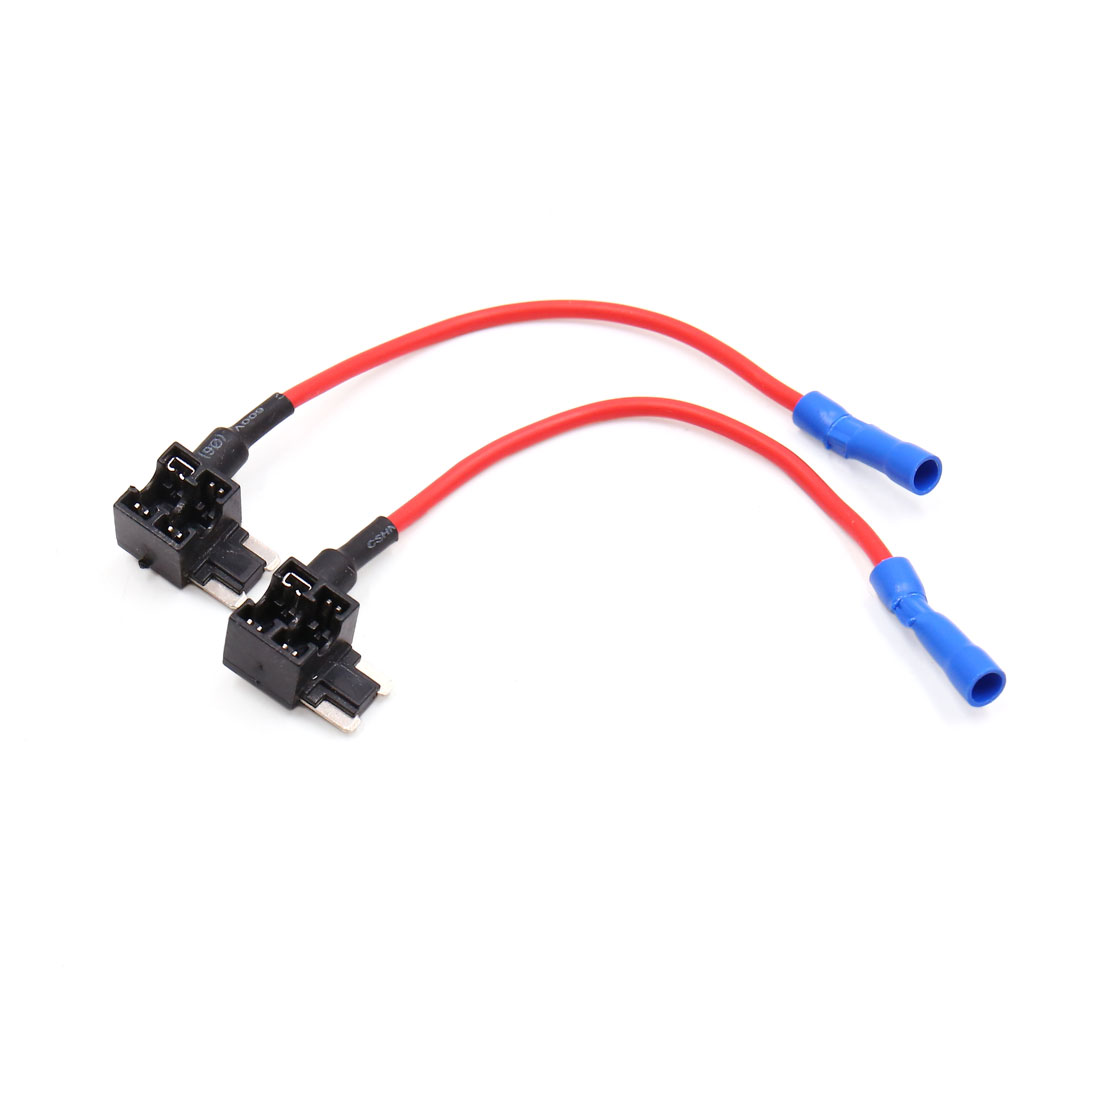 hight resolution of 2pcs add a circuit tap adapter low profile fuse box holder for car walmart com